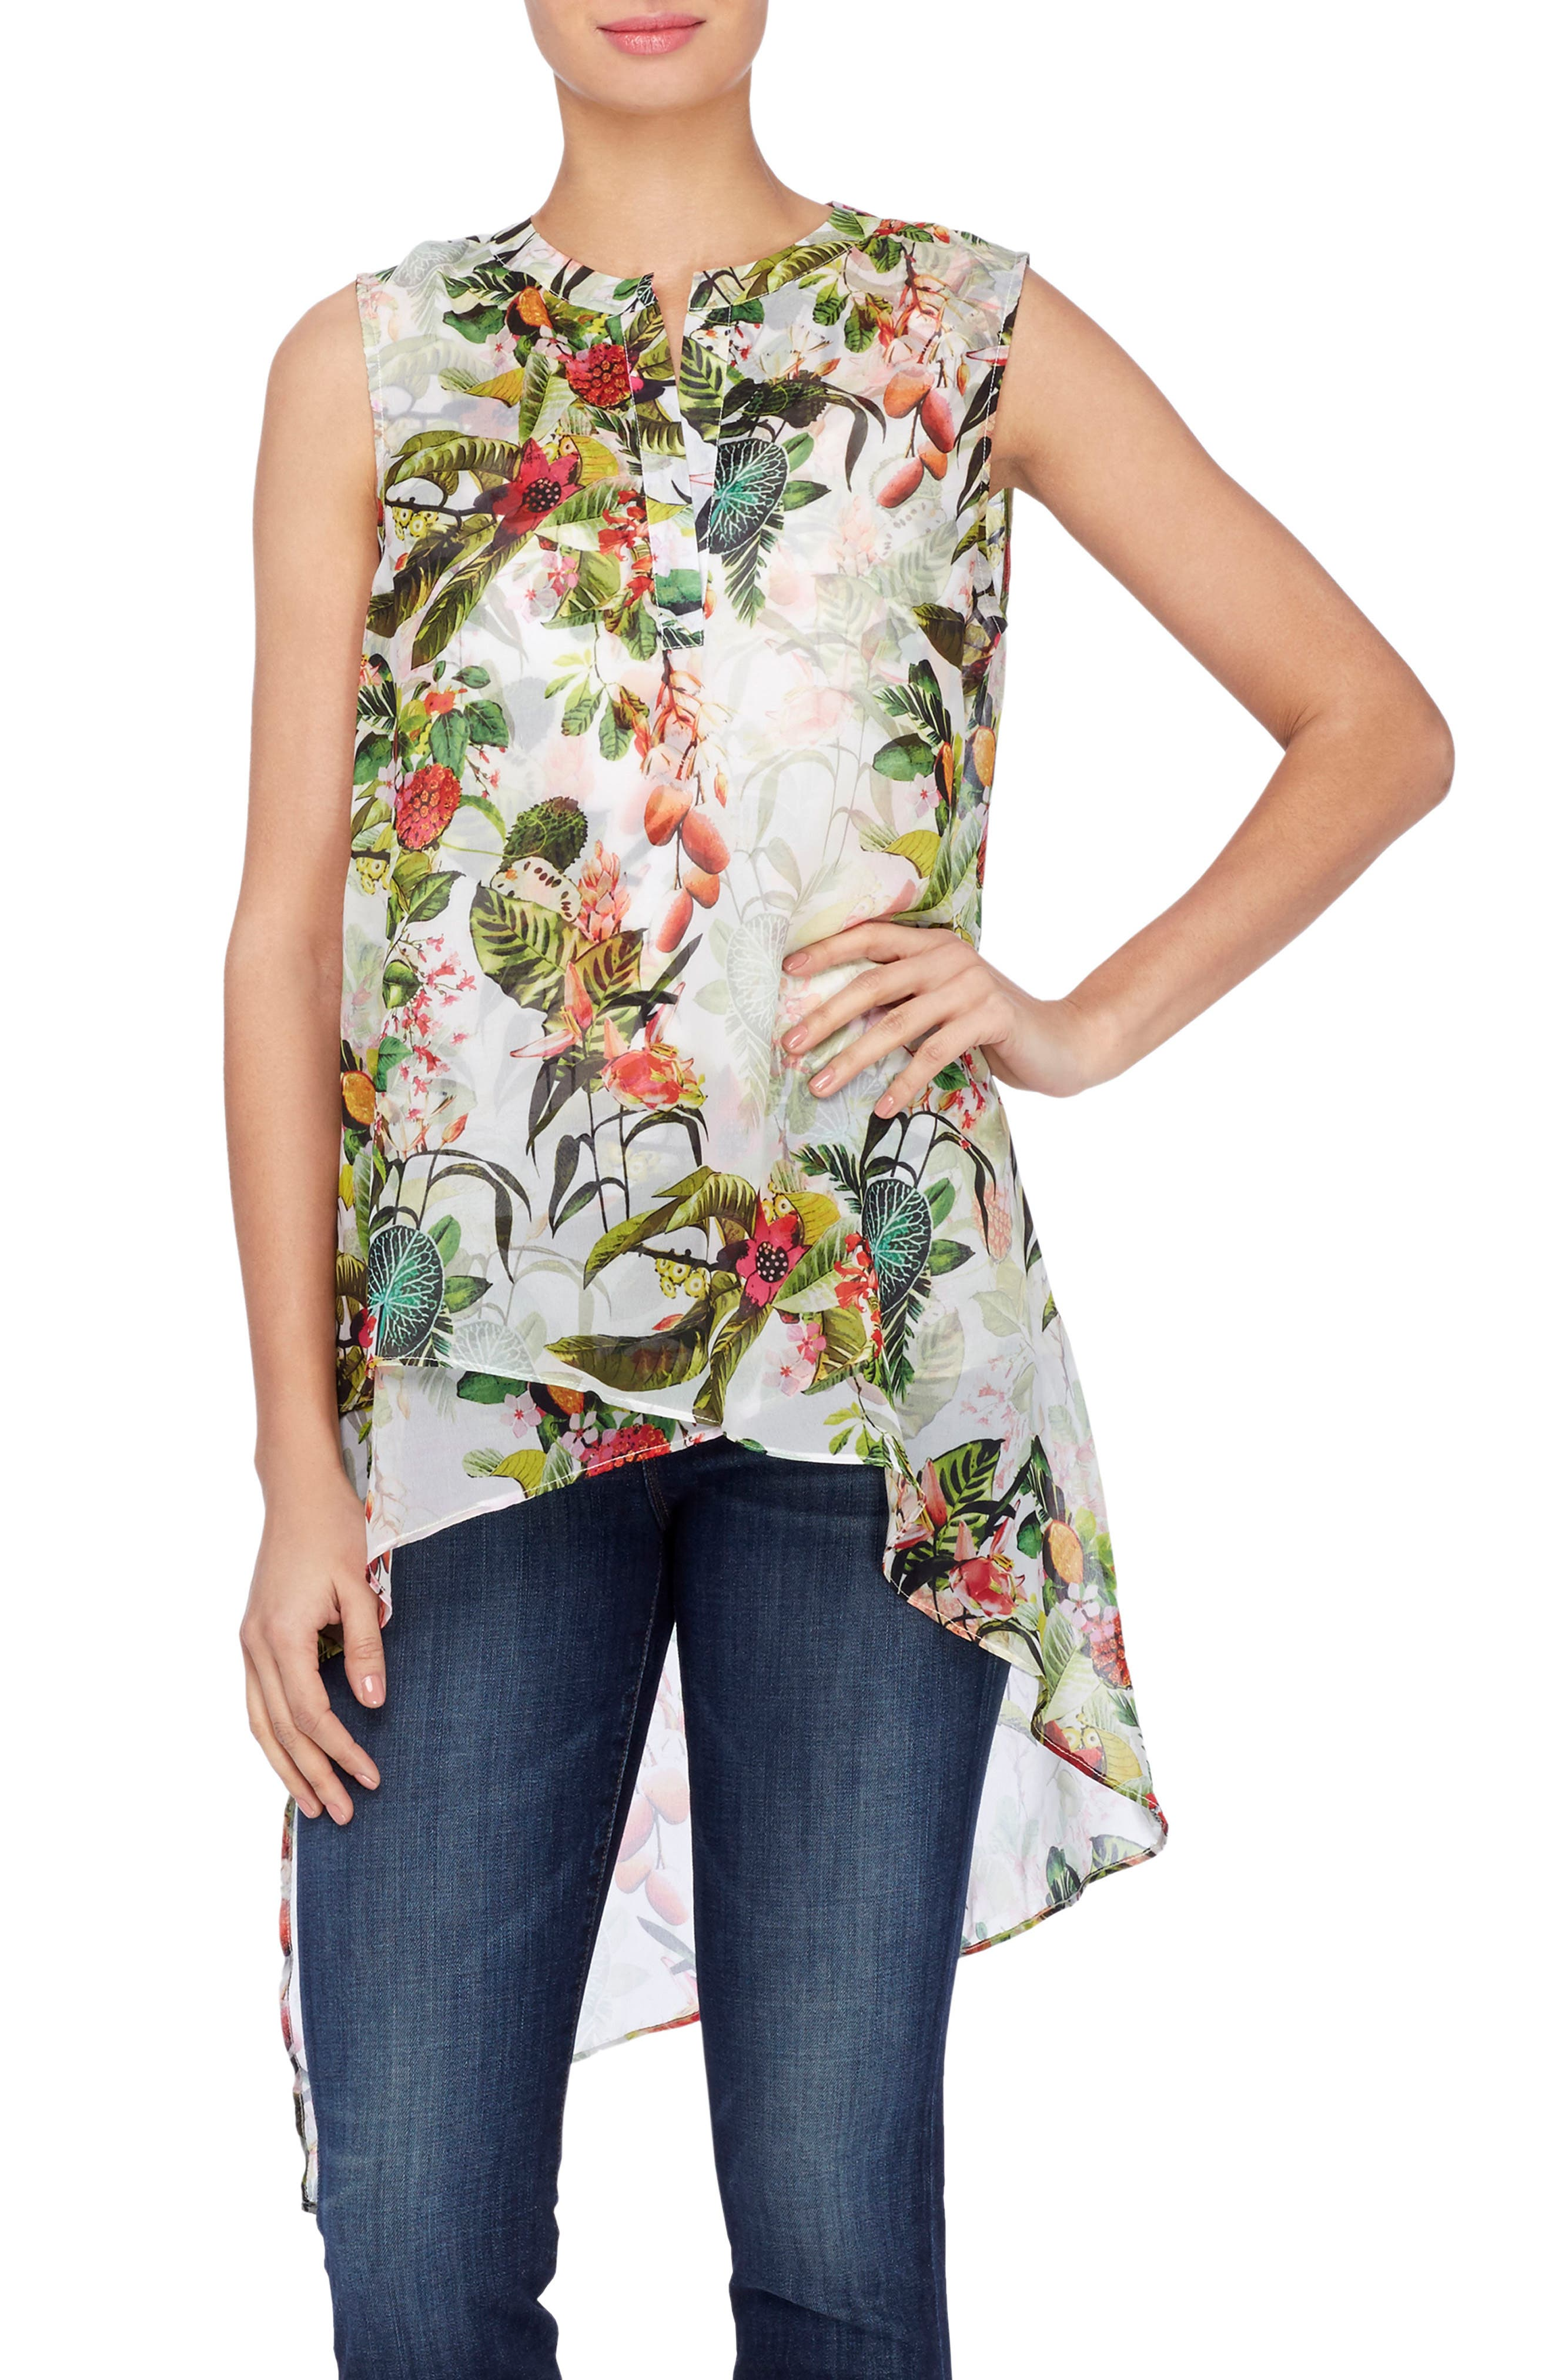 Alternate Image 1 Selected - Catherine Catherine Malandrino Livy Print High/Low Tunic Blouse